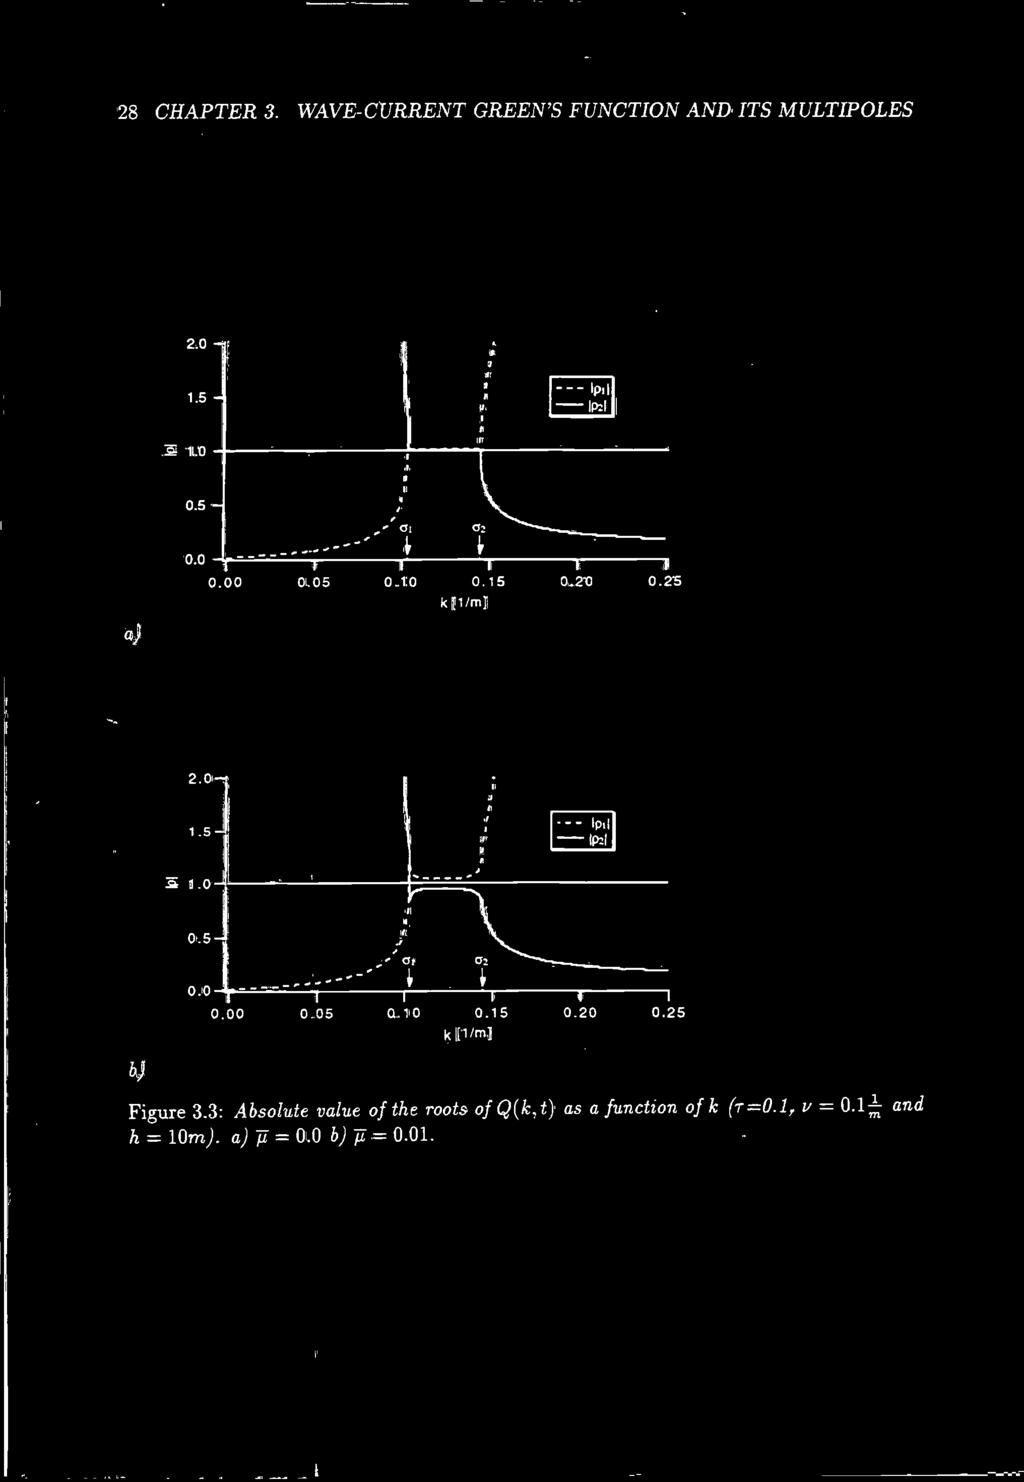 Wave Current Interaction Effects On Large Volume Bodies In Water Of Variable Resistor Circuit Diagram Physicslab January 2007 Part 1 5 Ipil 2i 10 05 B T 000 005 010